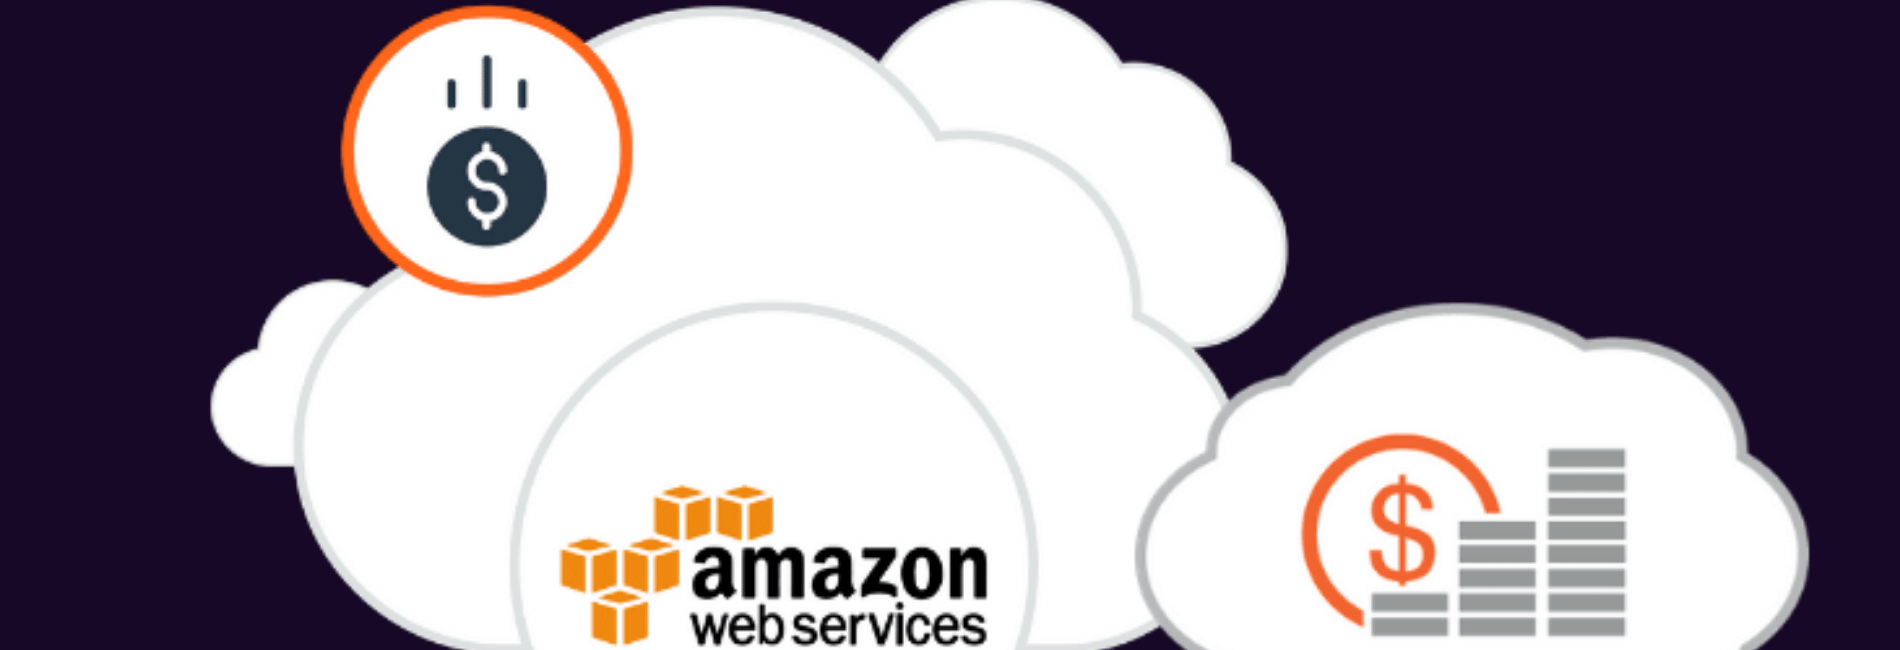 AWS, costoptimization